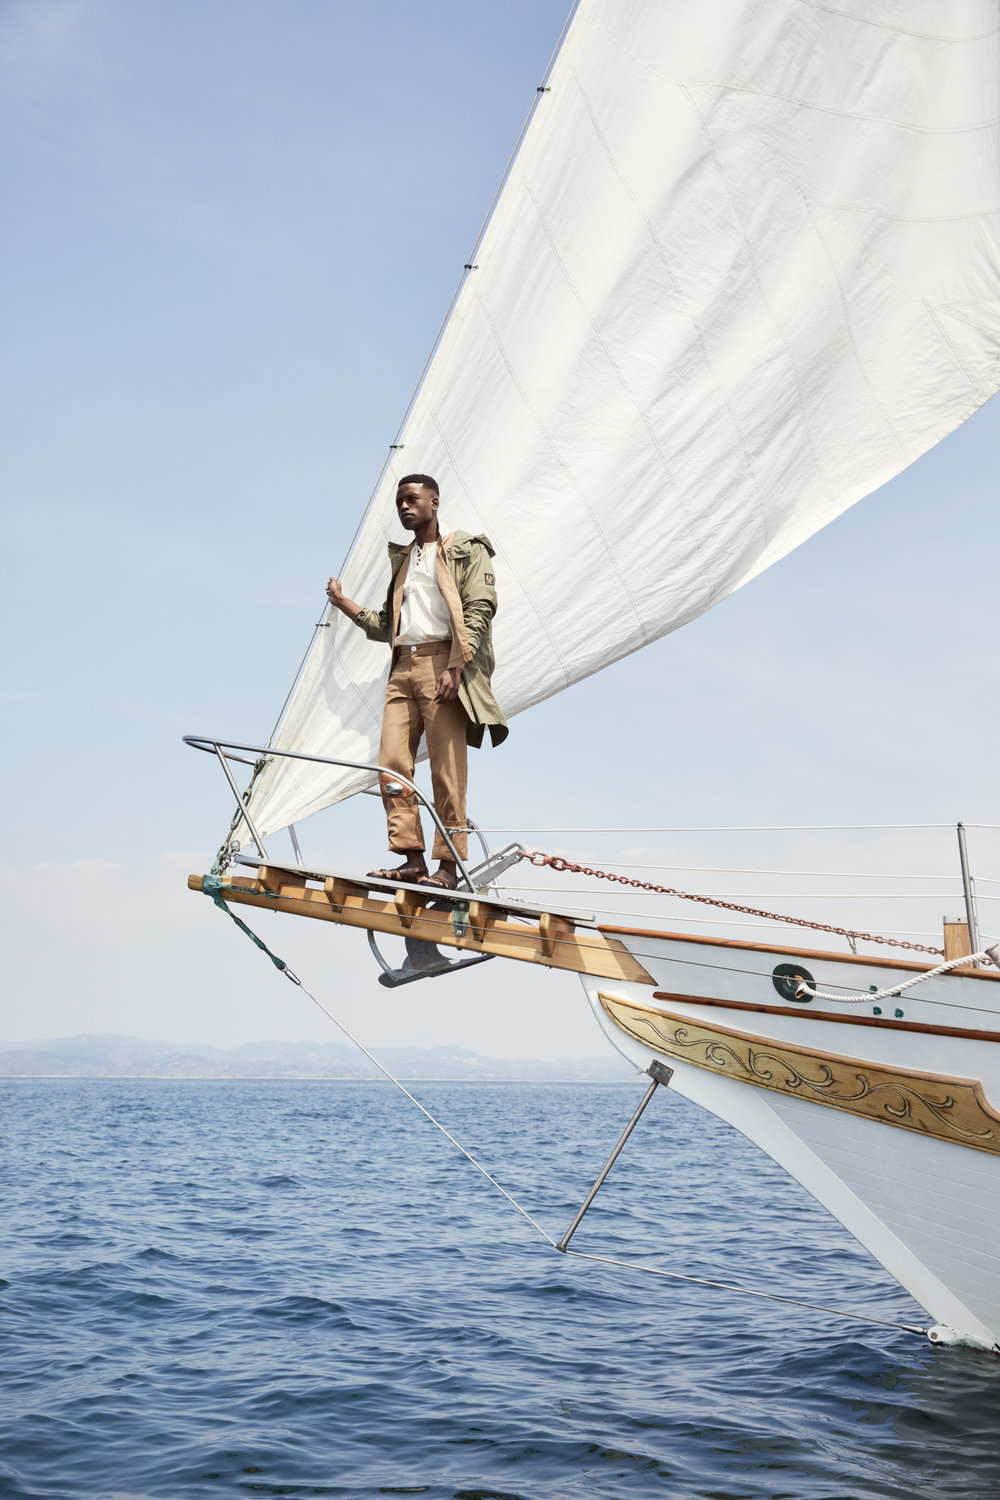 Man and the Sea - photography by WILLIAMS + HIRAKAWAstyling by MARK HOLMES